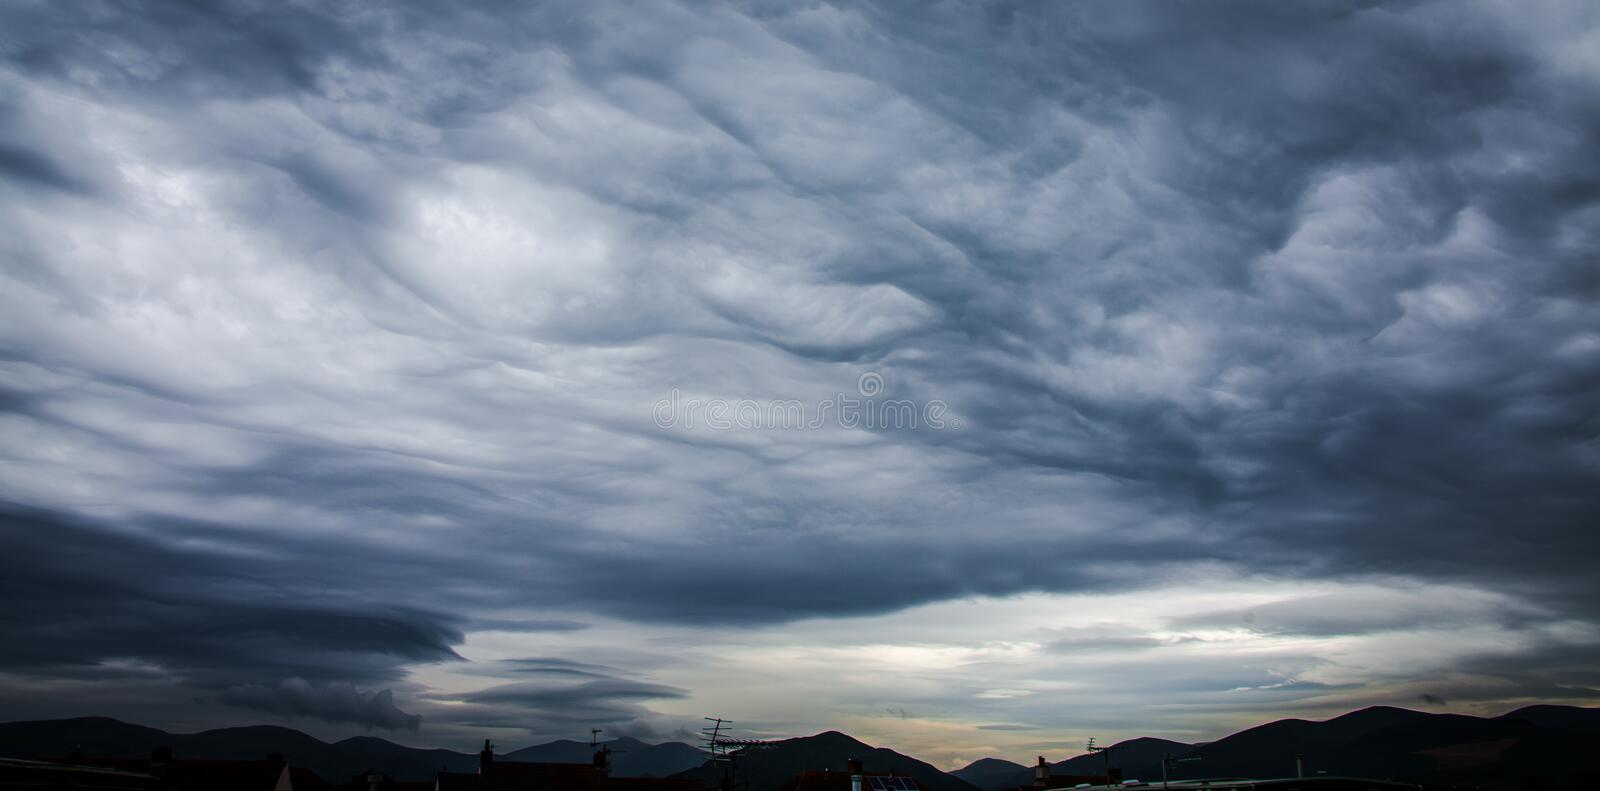 Bad stormy weather over mountains. Bad stormy storm weather over mountains royalty free stock photos